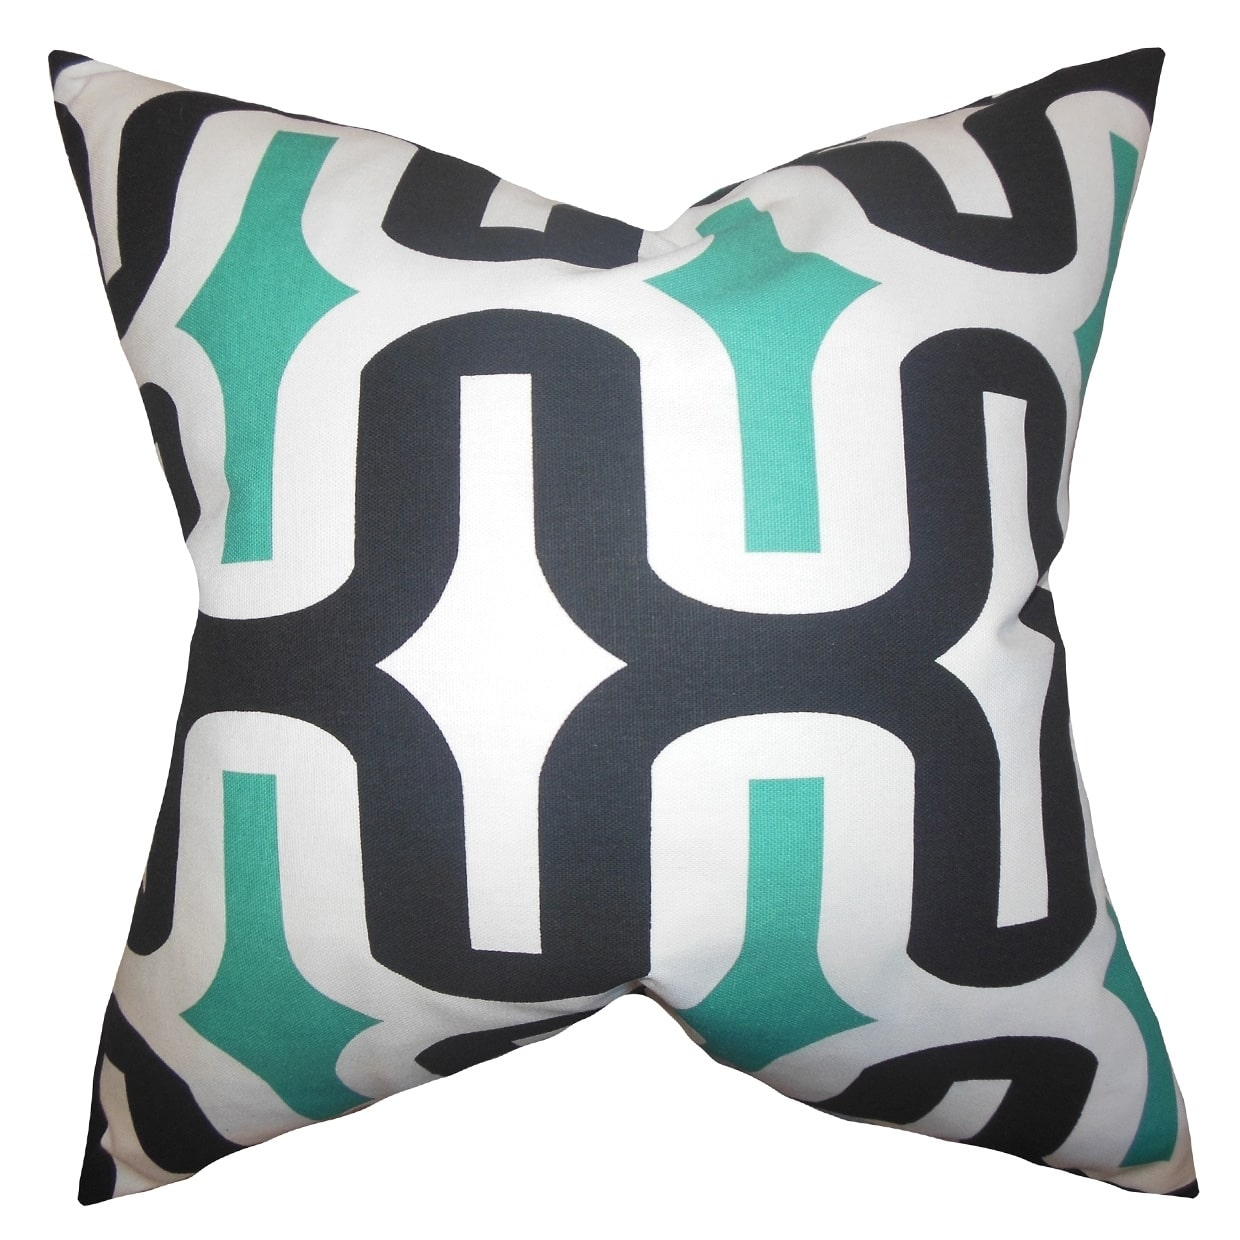 The Pillow Collection Jaslene Geometric Jade Feather Filled Throw Pillow